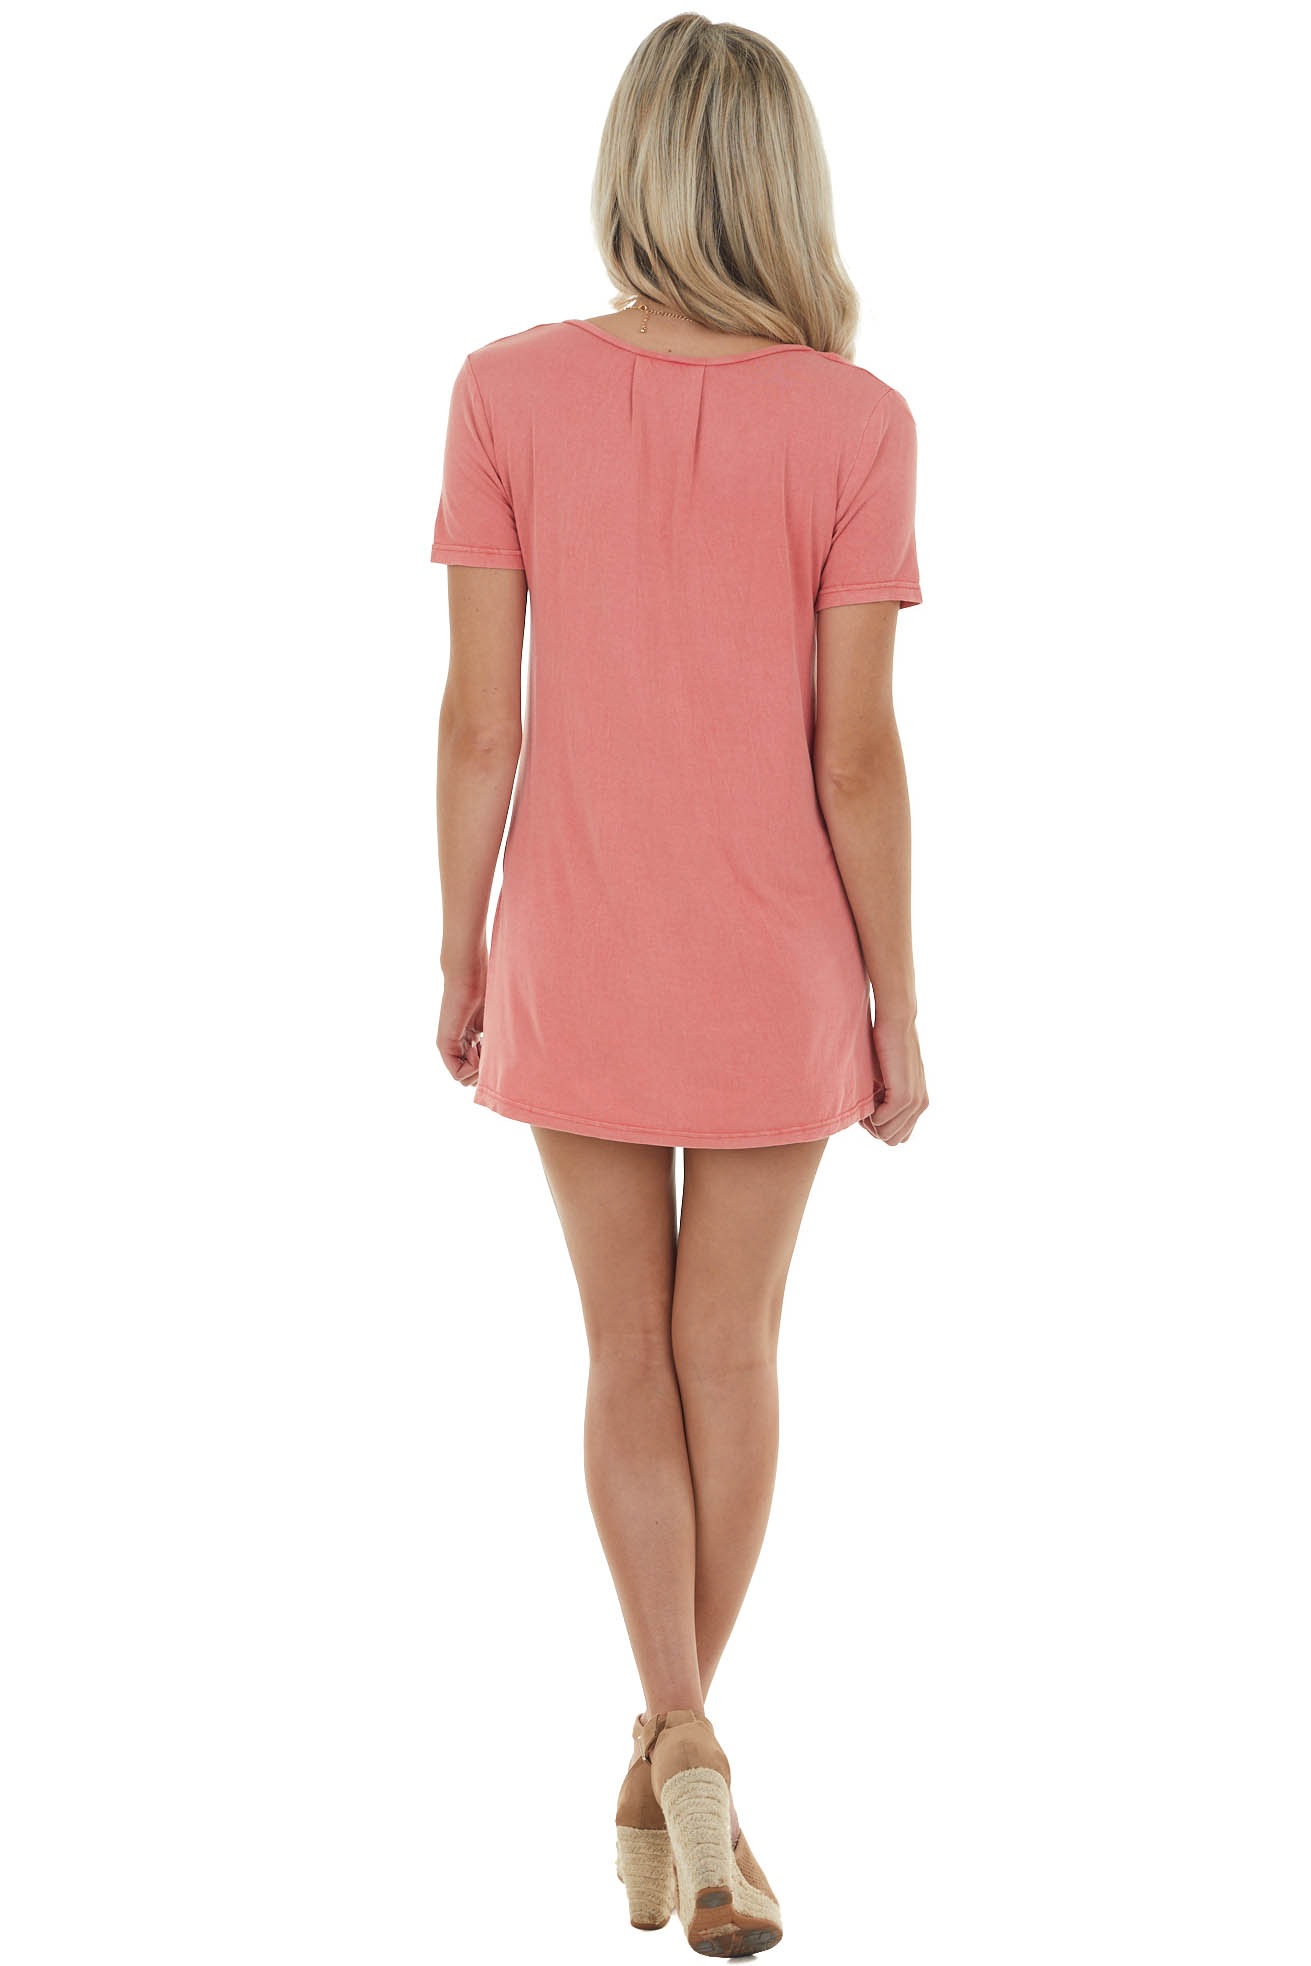 Watermelon V Neck Knit Top with Front Pocket